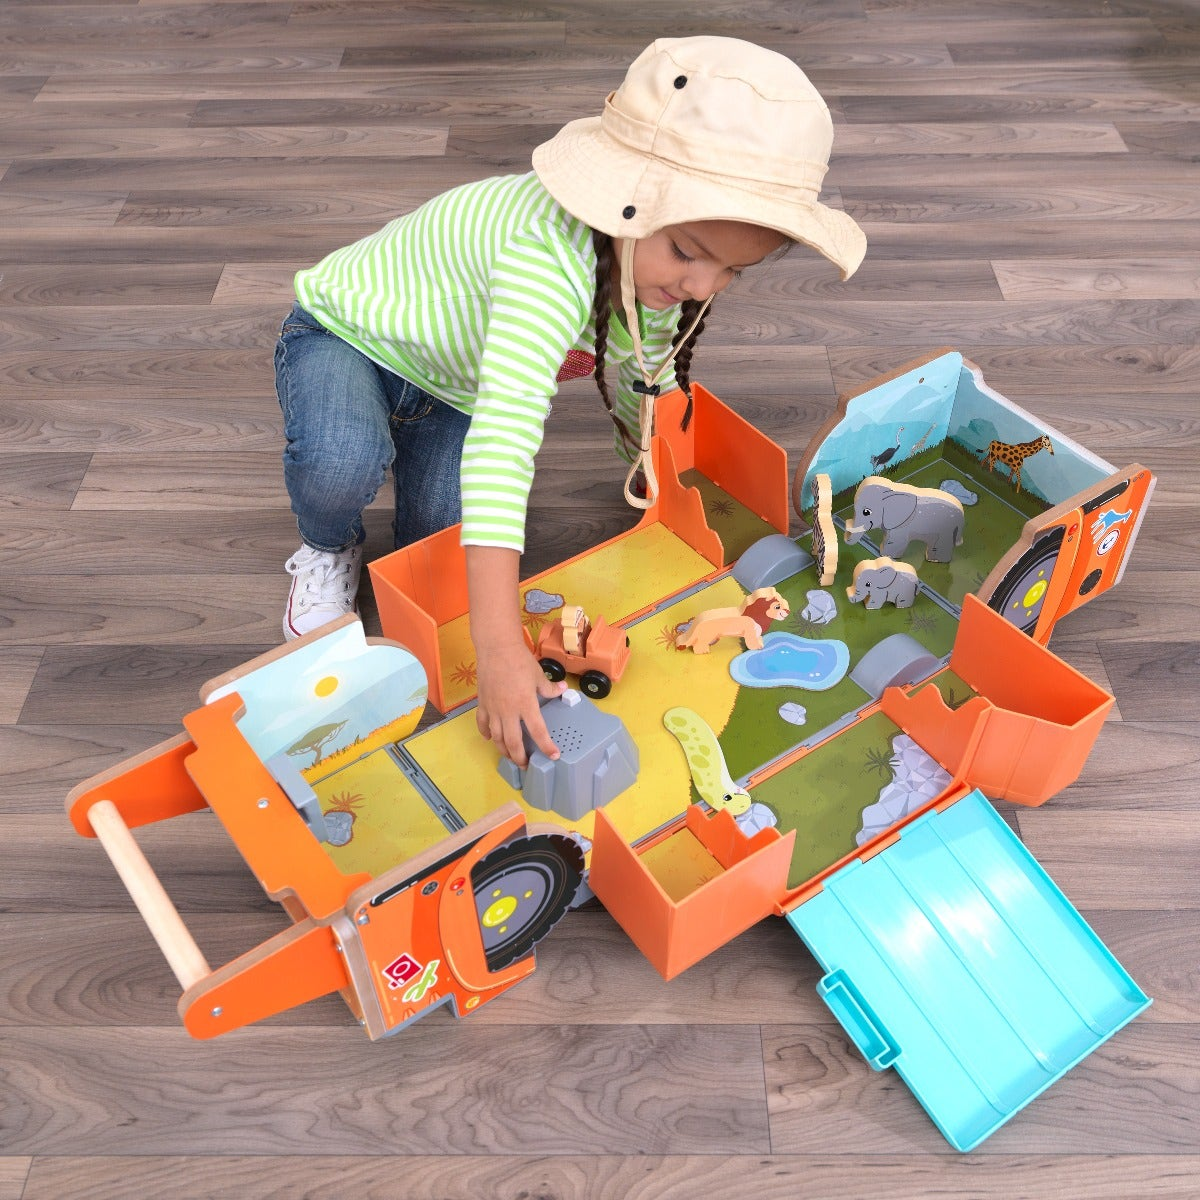 Push along with feet to move along the floor so kids control the speed and direction. Perfect for building confidence in early learners.